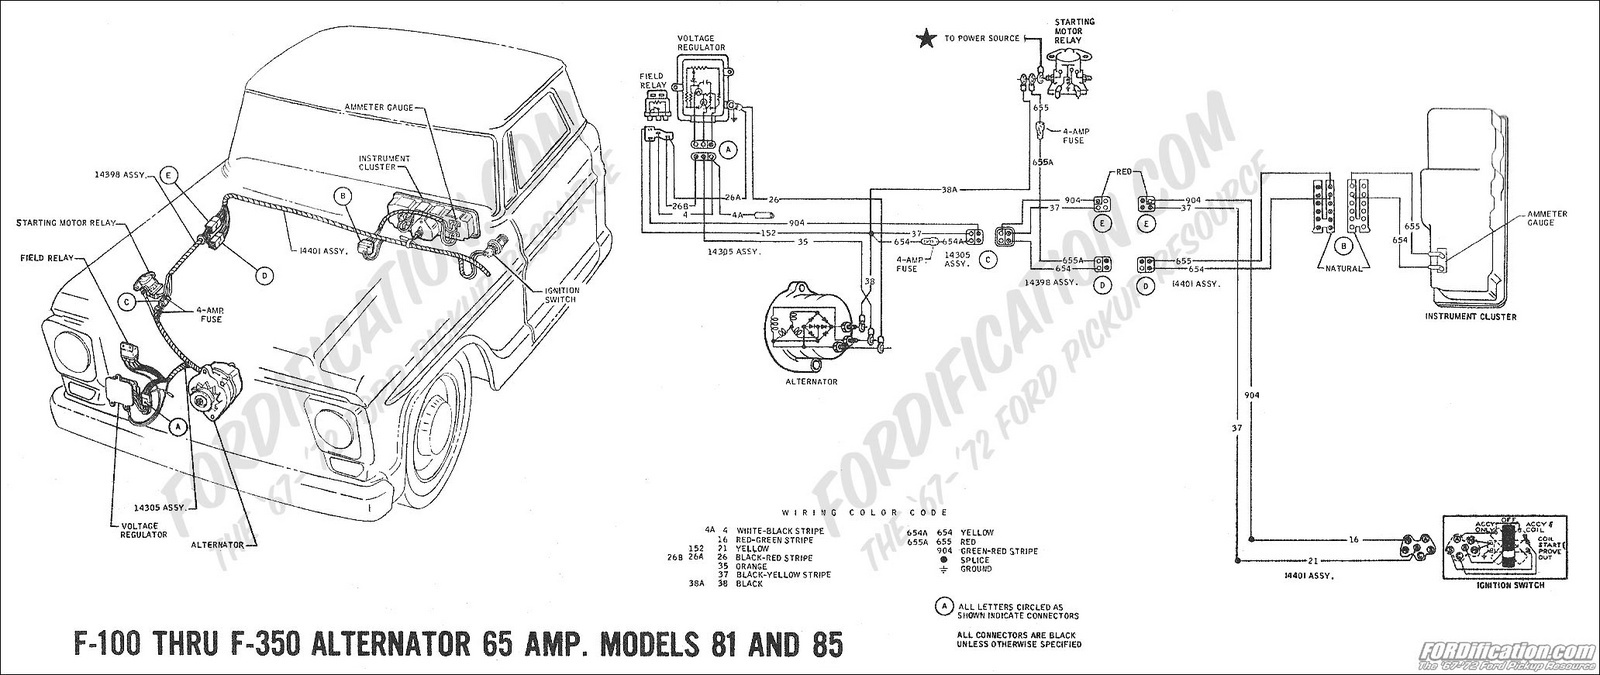 1971 ford f250 wiring diagram ford f 100 questions i have a 73 f 100 i have no power to the s  ford f 100 questions i have a 73 f